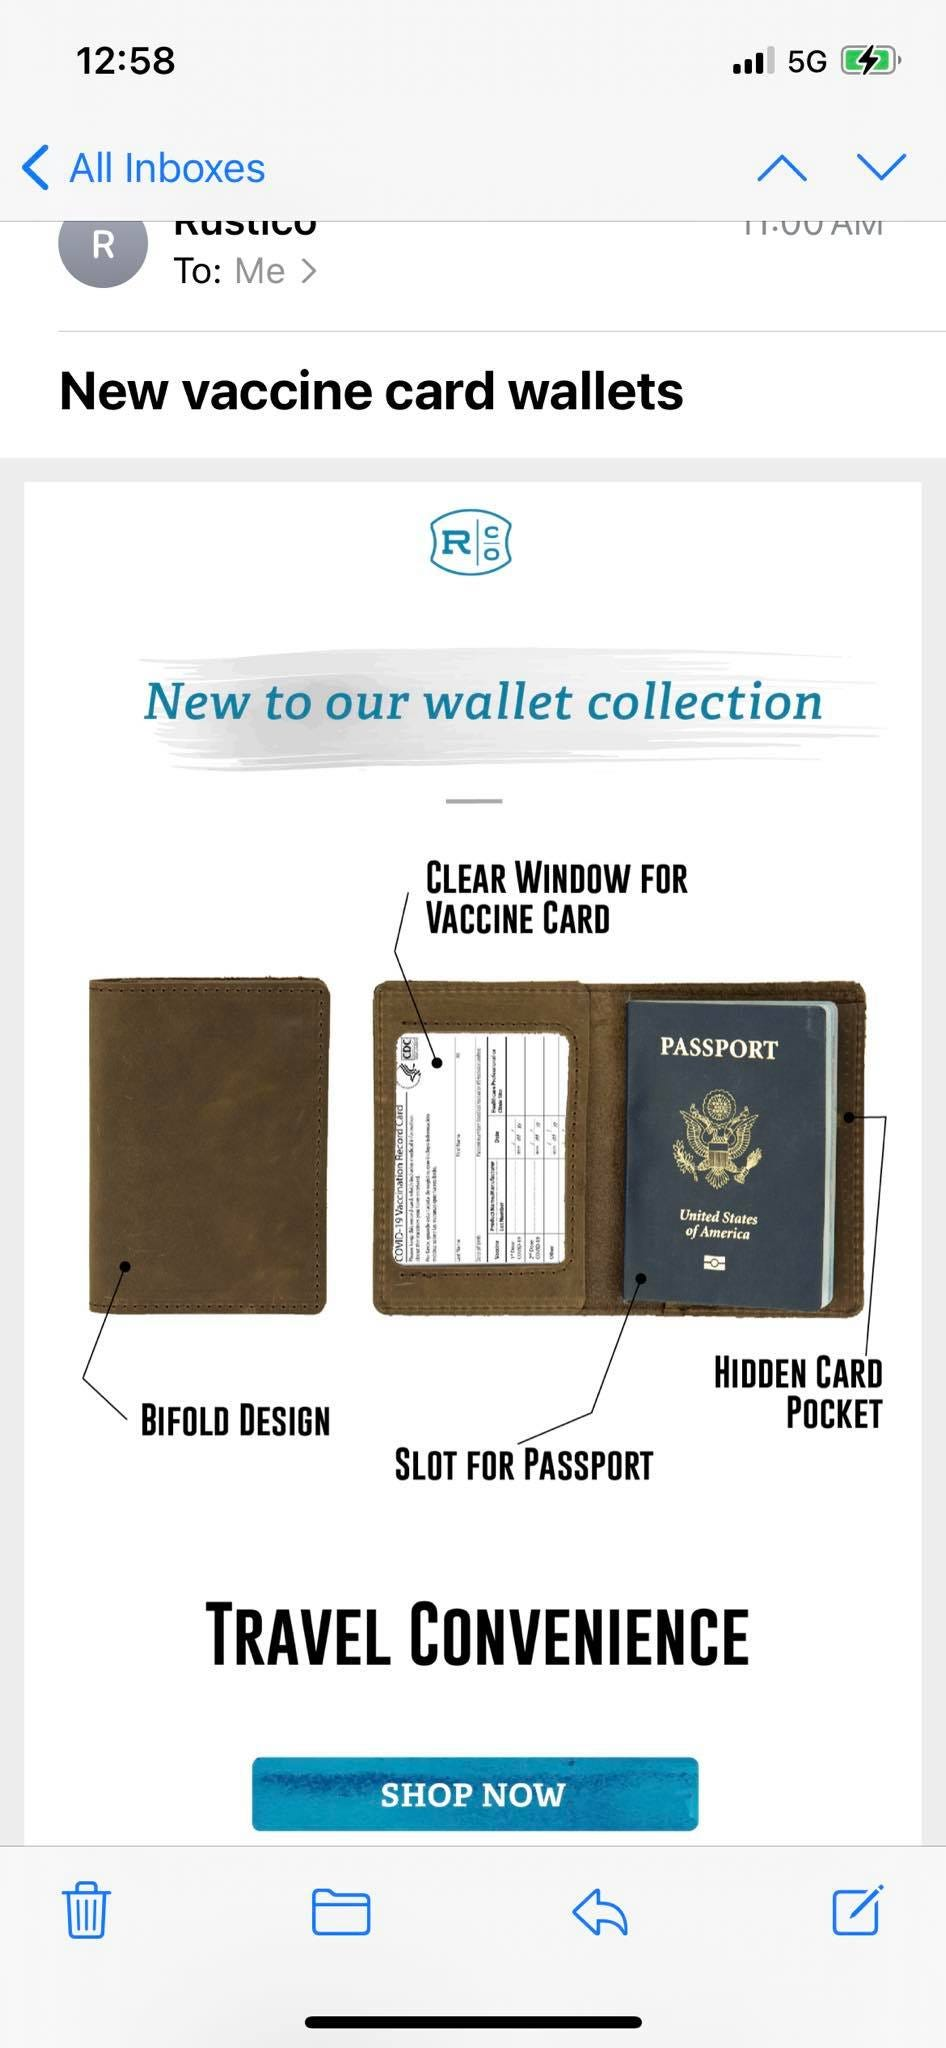 May be an image of saddle-stitched leather and text that says '12:58 5G R All Inboxes nustico To: Me 11000 New vaccine card wallets New to our wallet collection CLEAR WINDOW FOR VACCINE CARD PASSPORT UnitedState BIFOLD DESIGN HIDDEN CARD pocKeT SLOT FOR PASSPORT TRAVEL CONVENIENCE SHOP NOW'